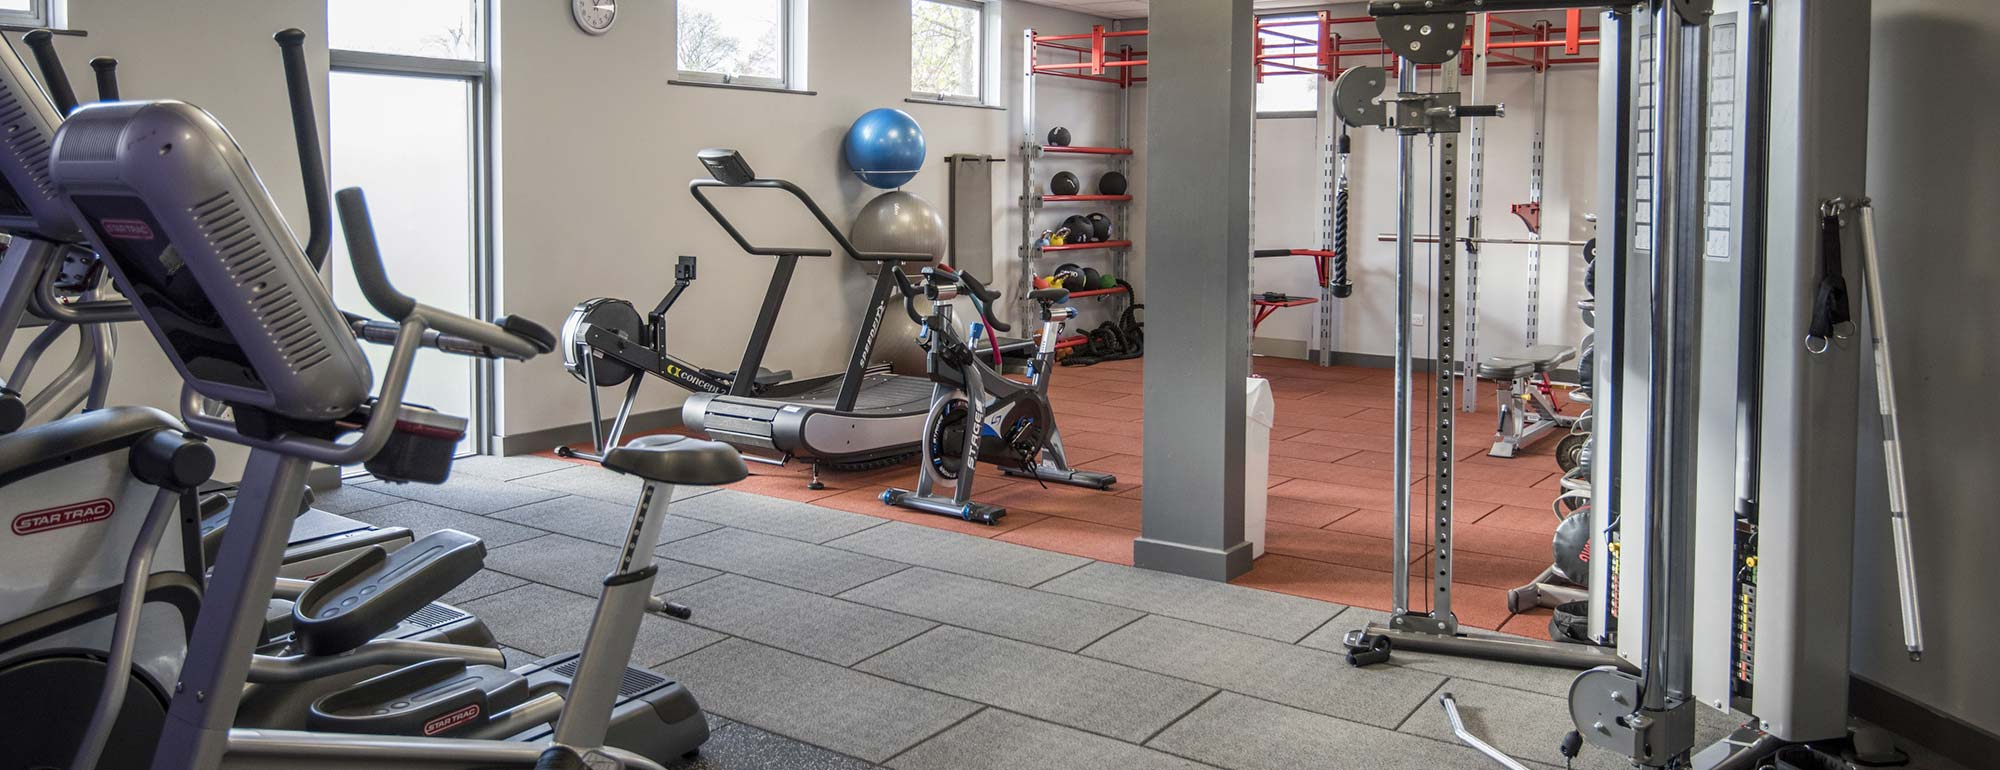 health-gyms-Selkirk-Leisure-Centre